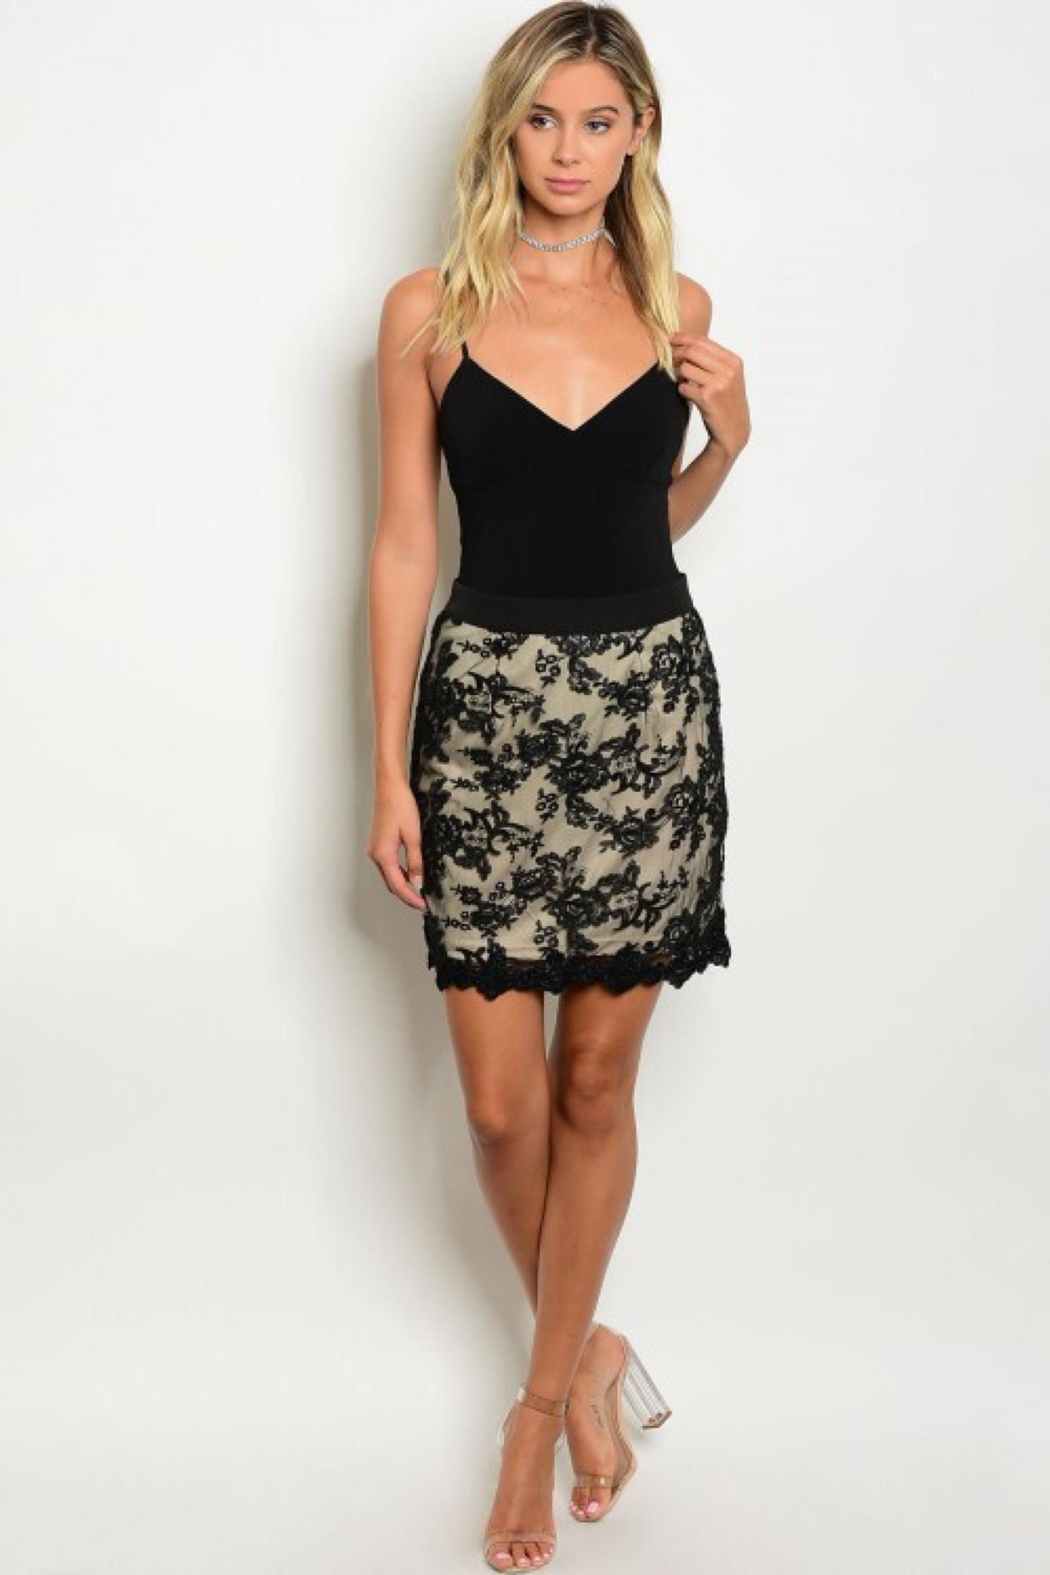 People Outfitter Black Lace Skirt - Main Image